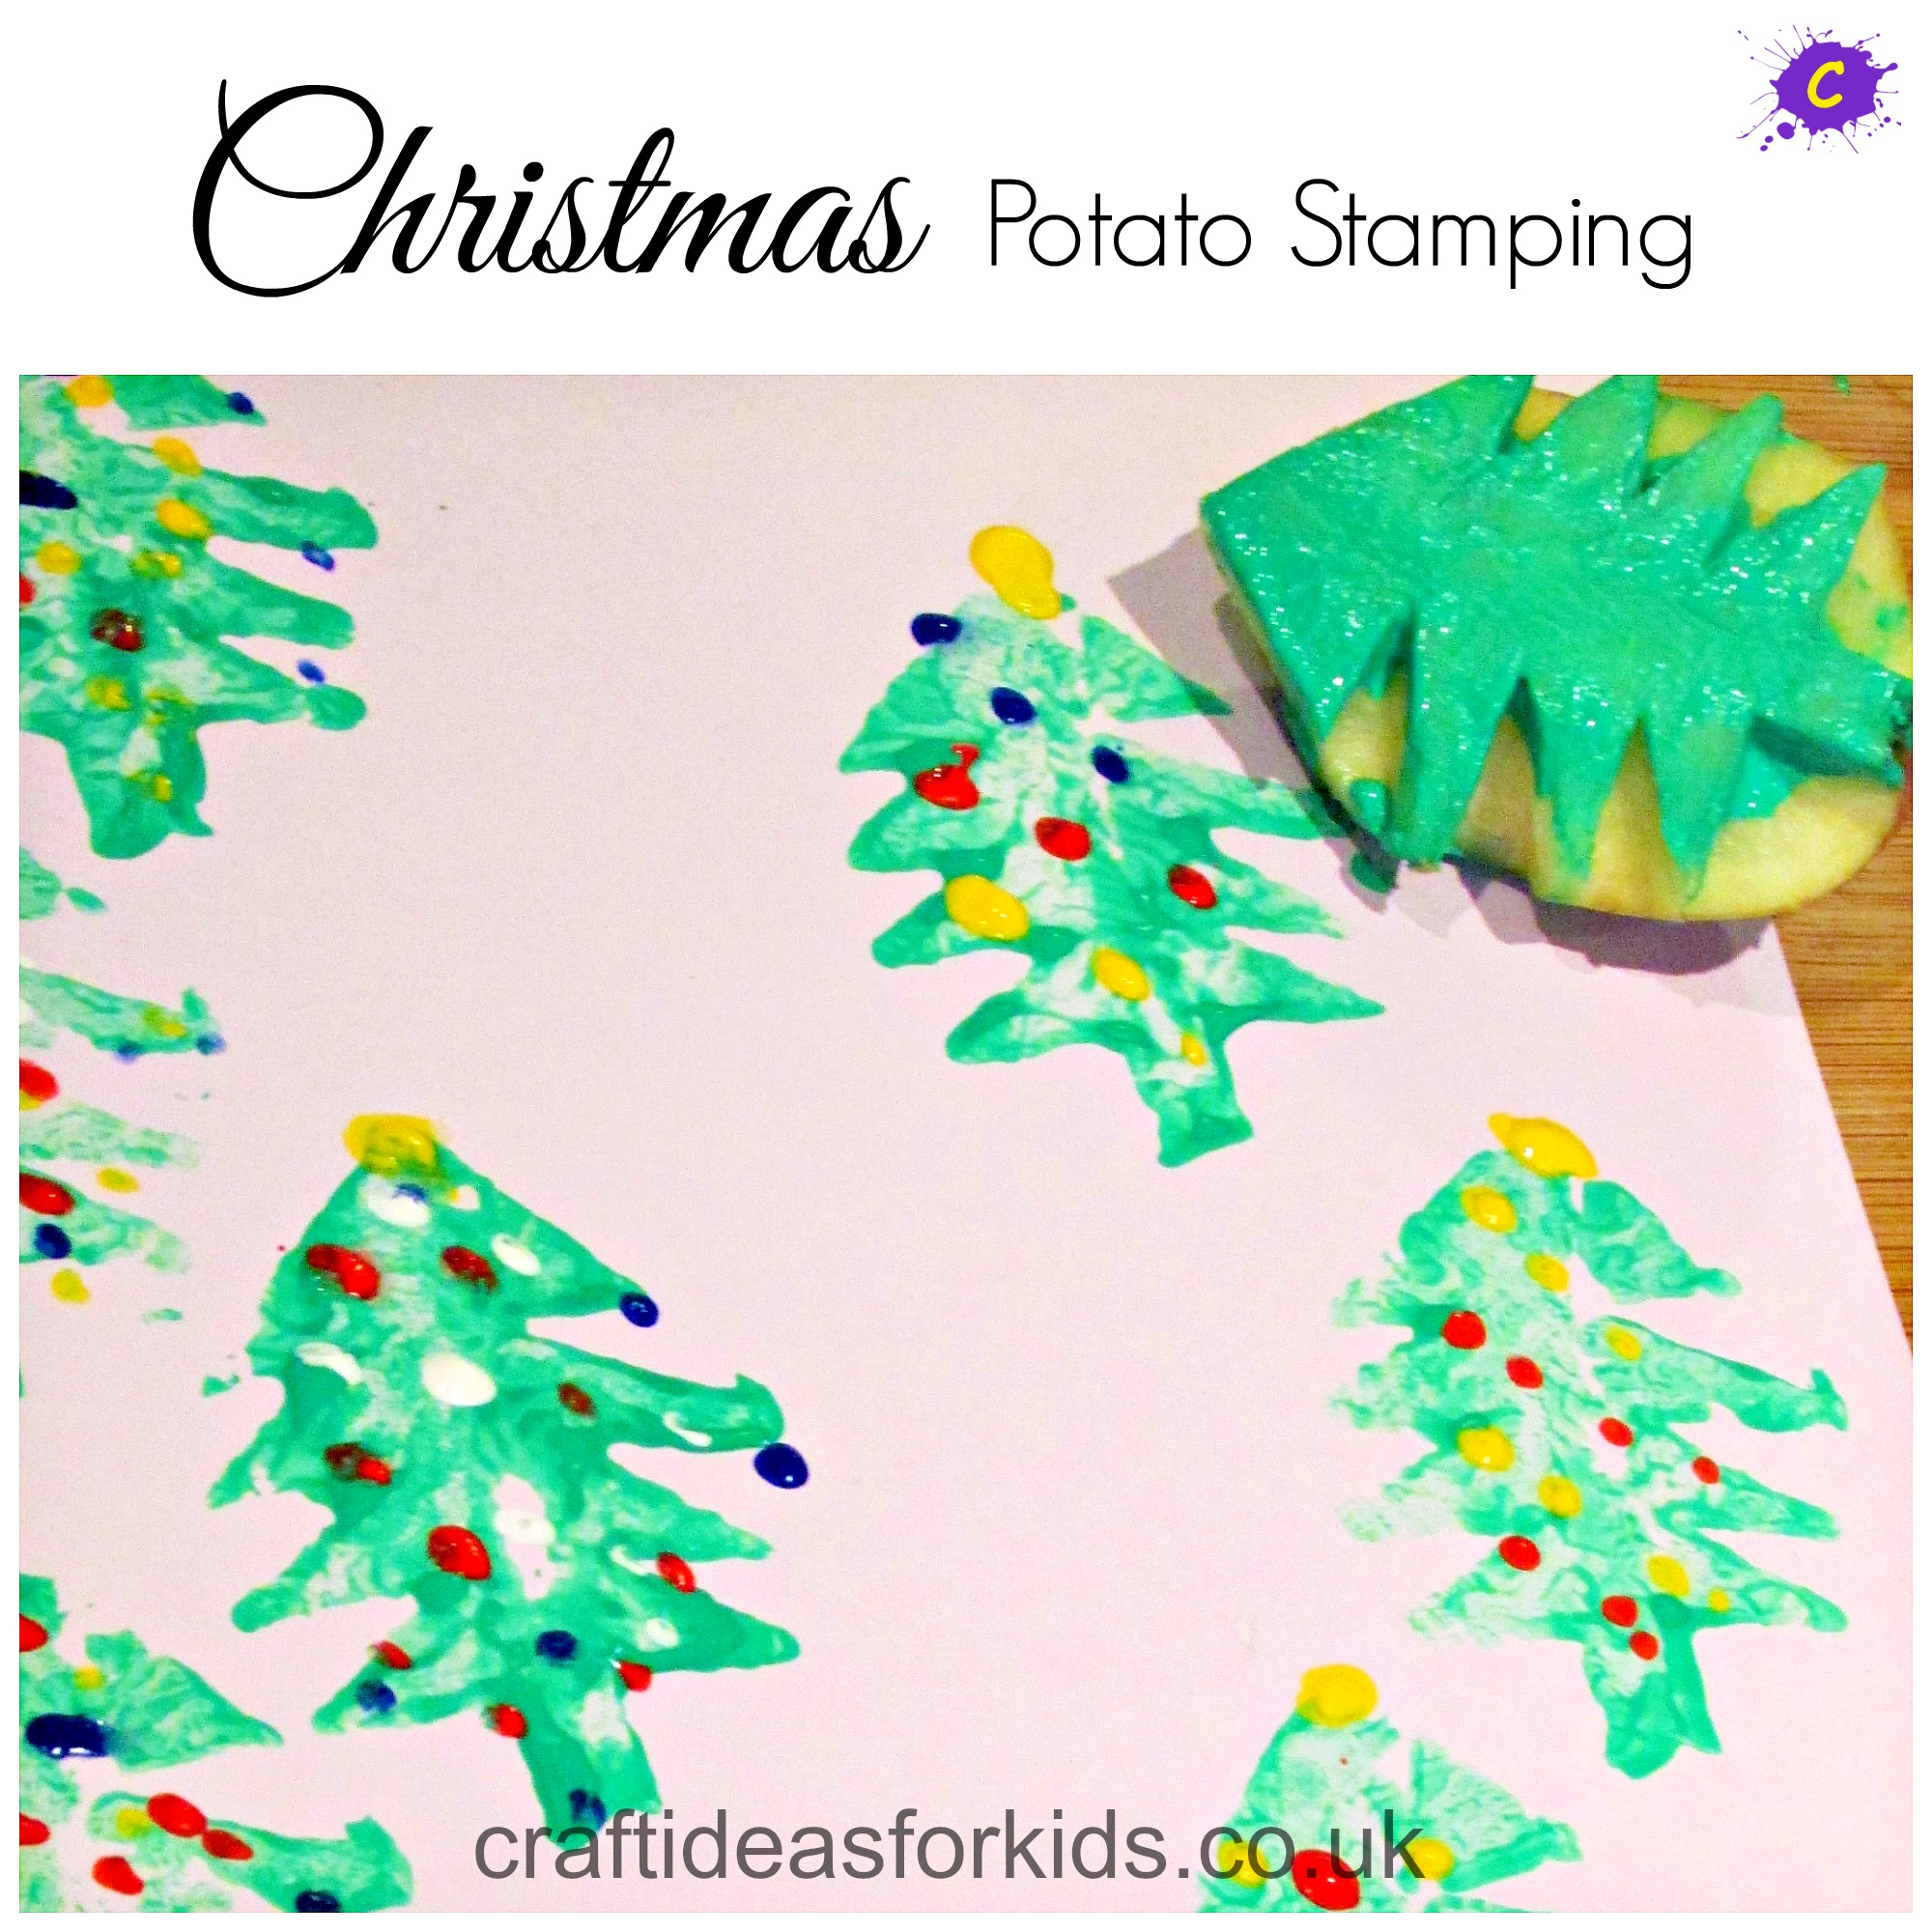 Craft Ideas for Kids - Christmas Potato Stamping